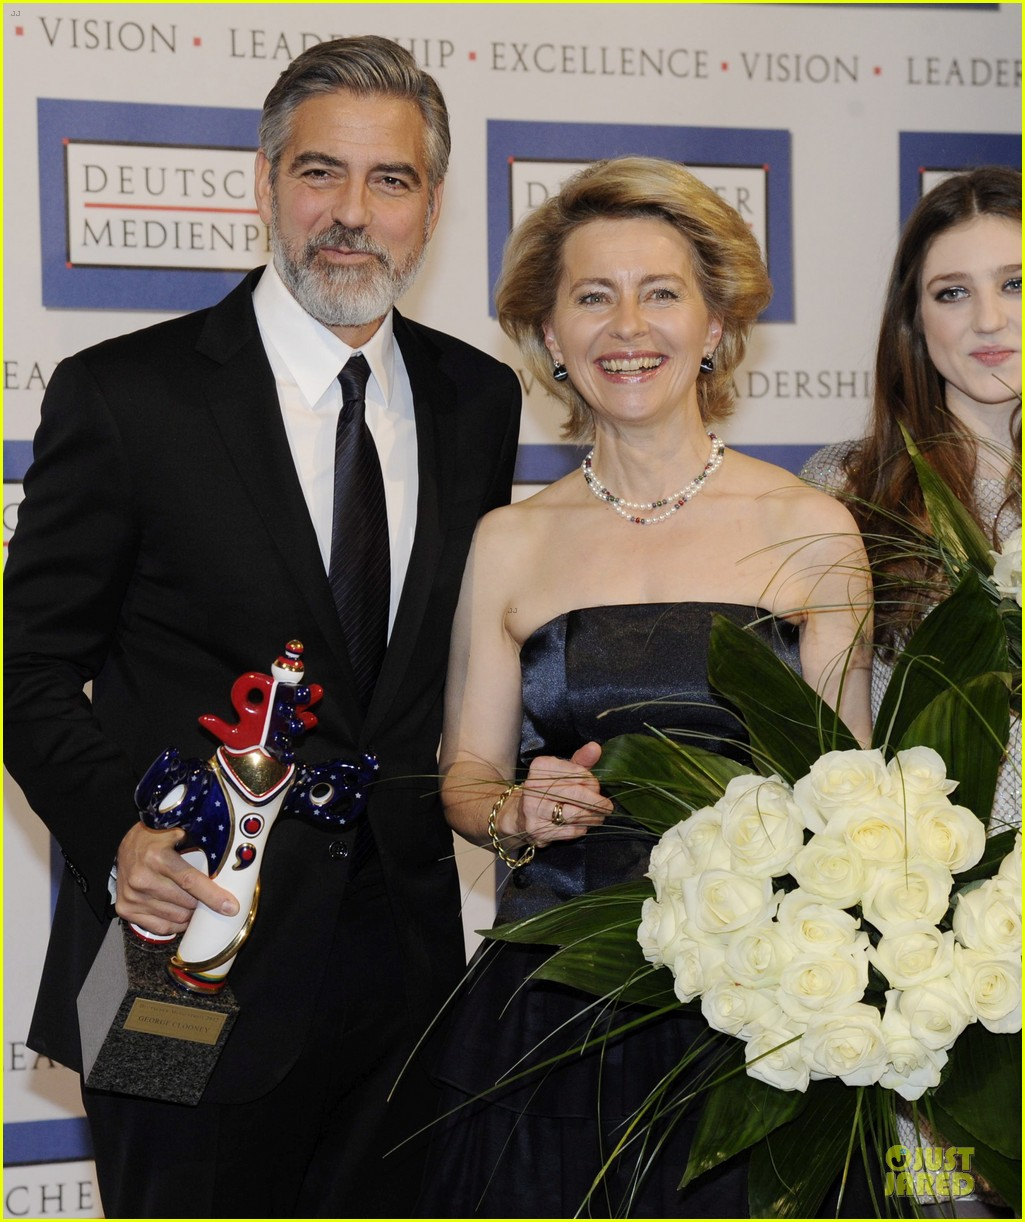 george clooney deutscher medienpreis award honoree 092821437